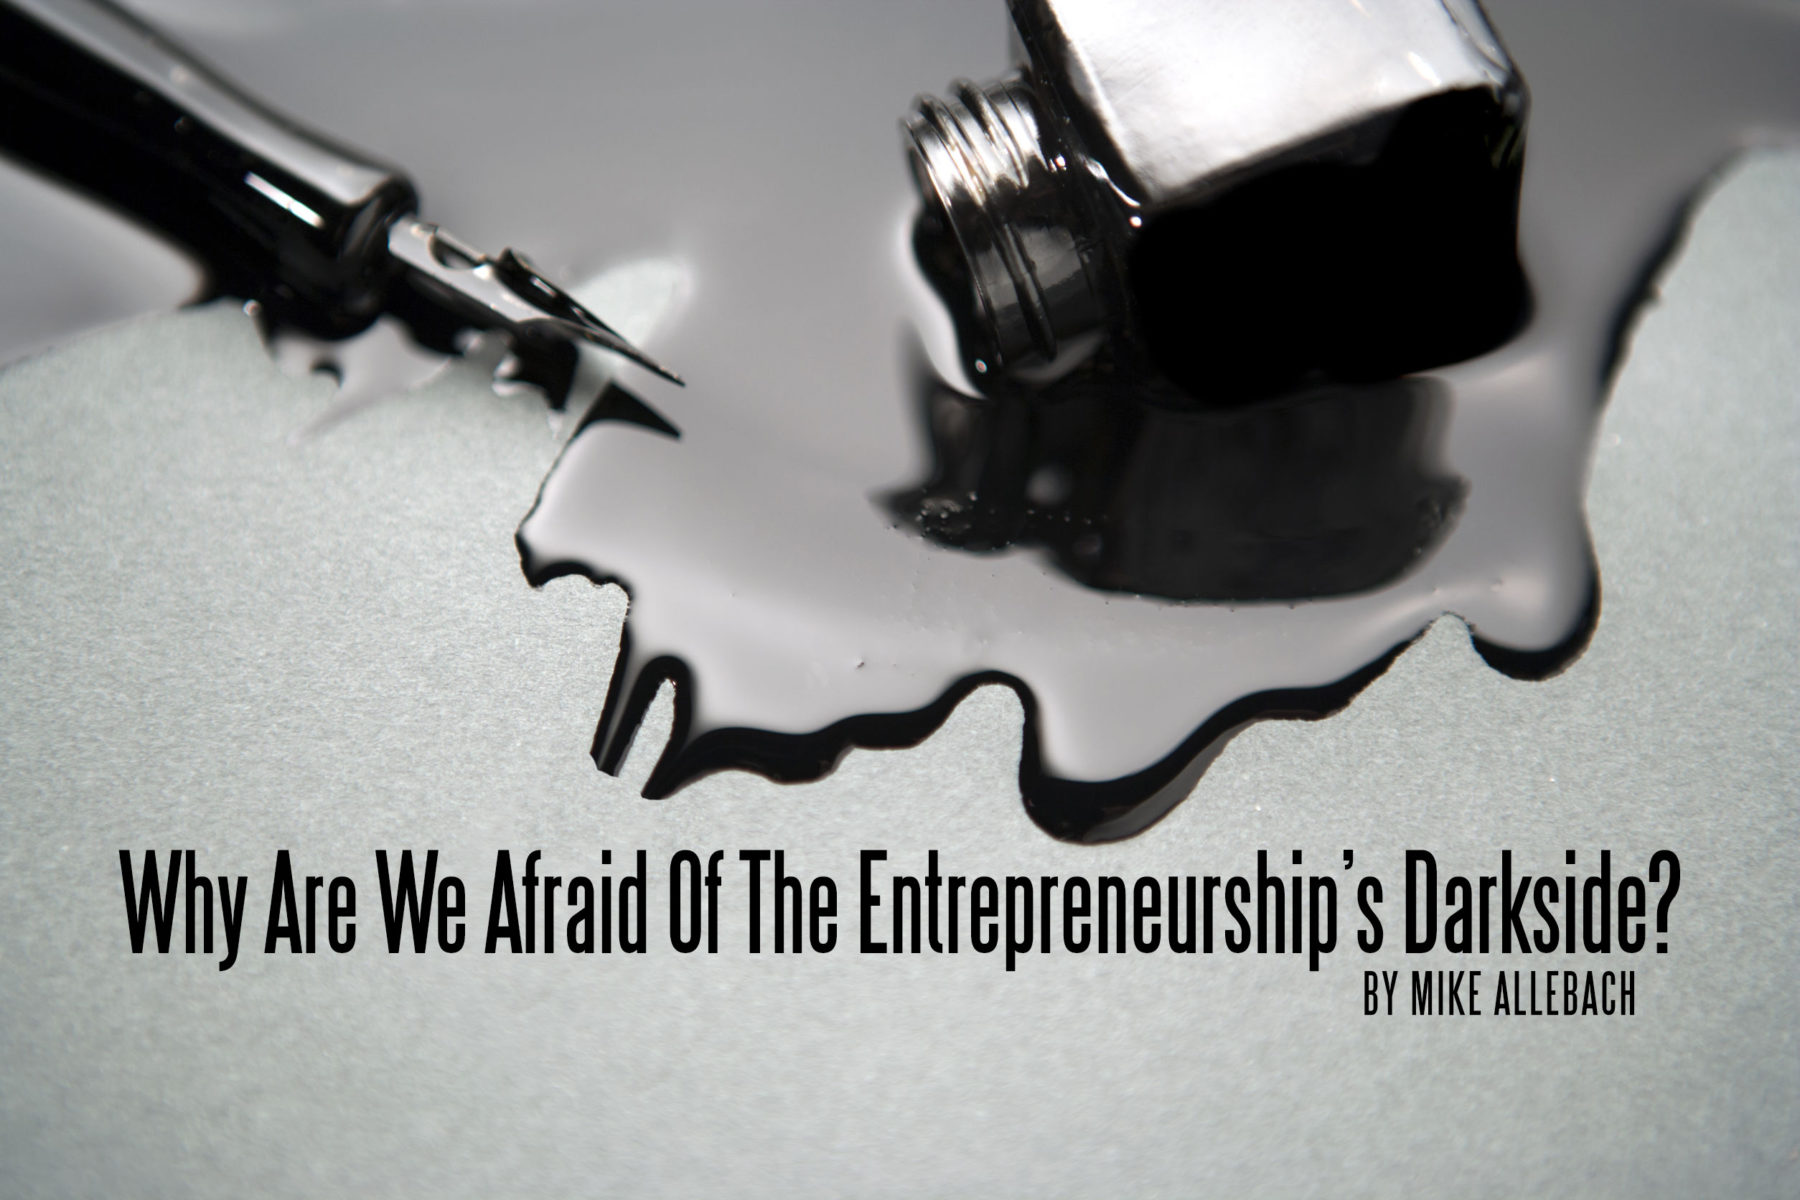 Why Are We Afraid Of The Entrepreneurship's Darkside